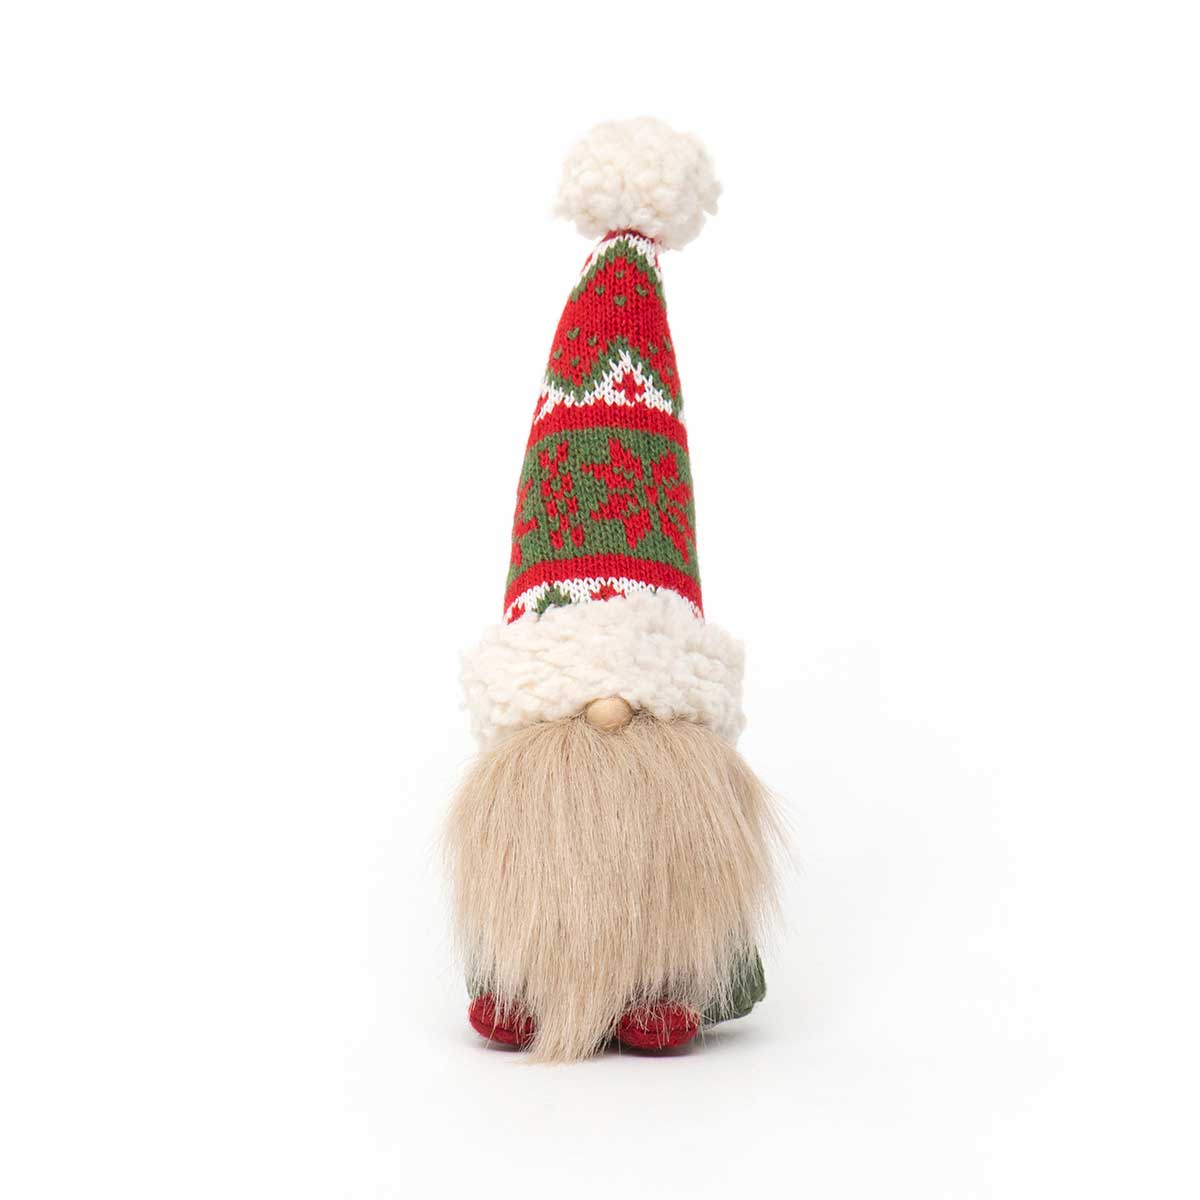 MINI GNOME WITH WIRED RED/GREEN SWEATER